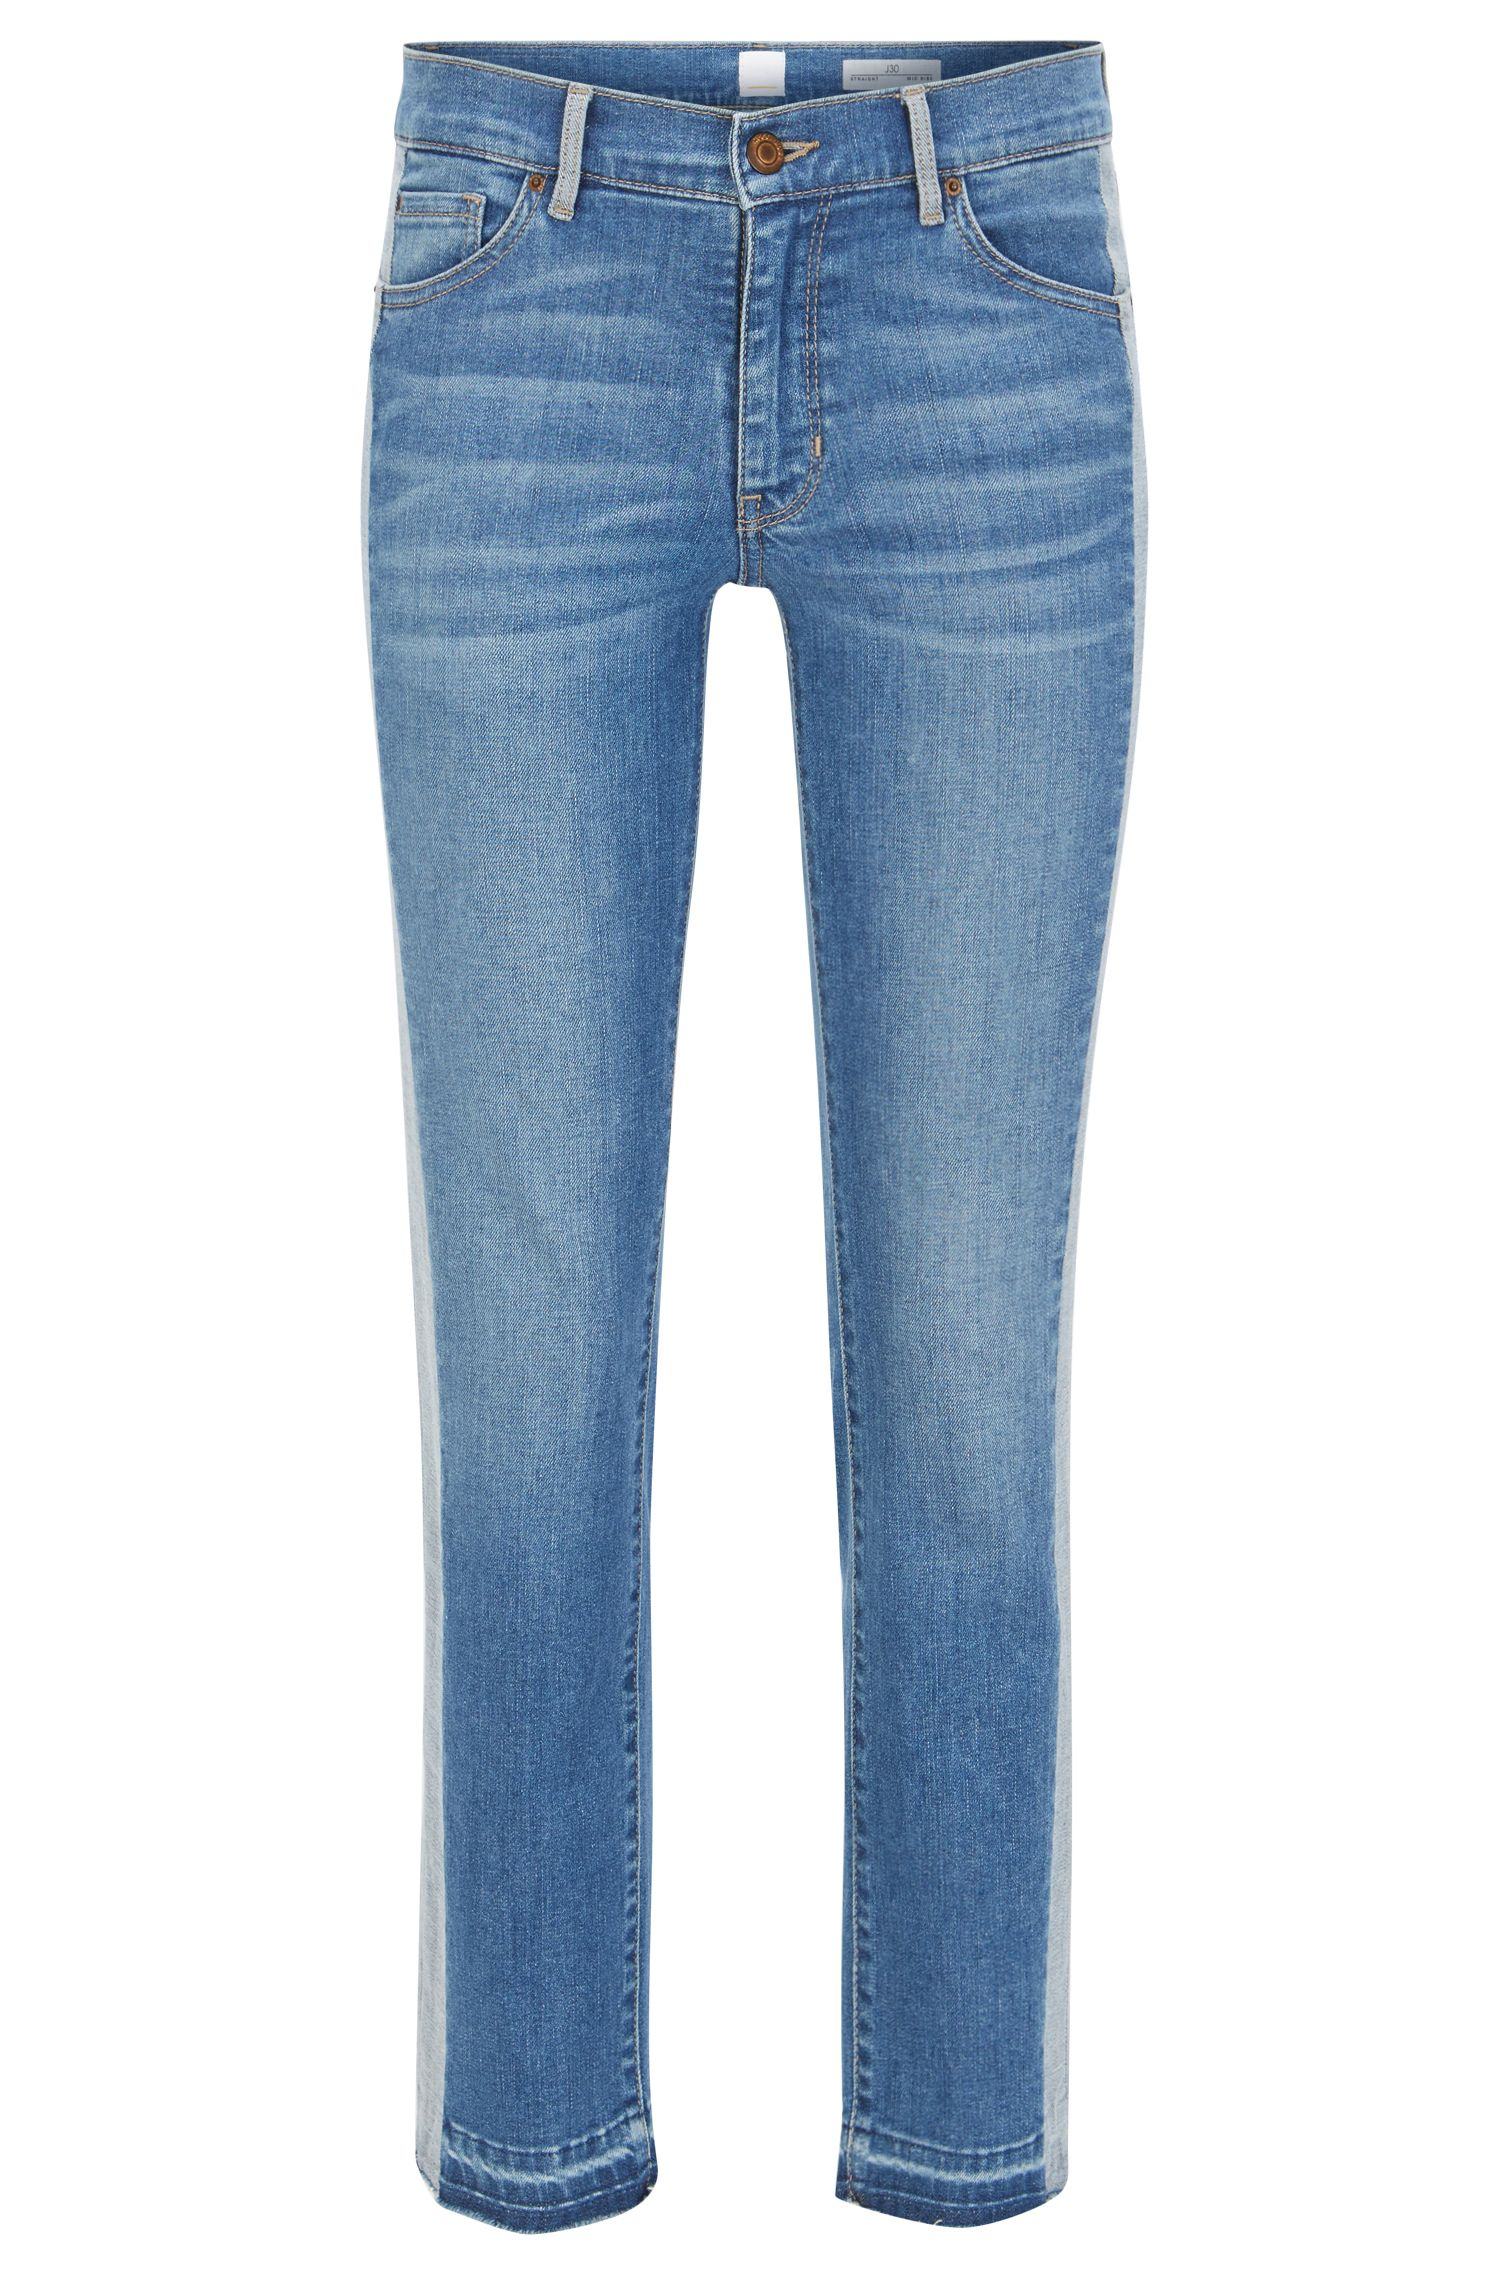 Kortere, slim-fit jeans van stretchdenim